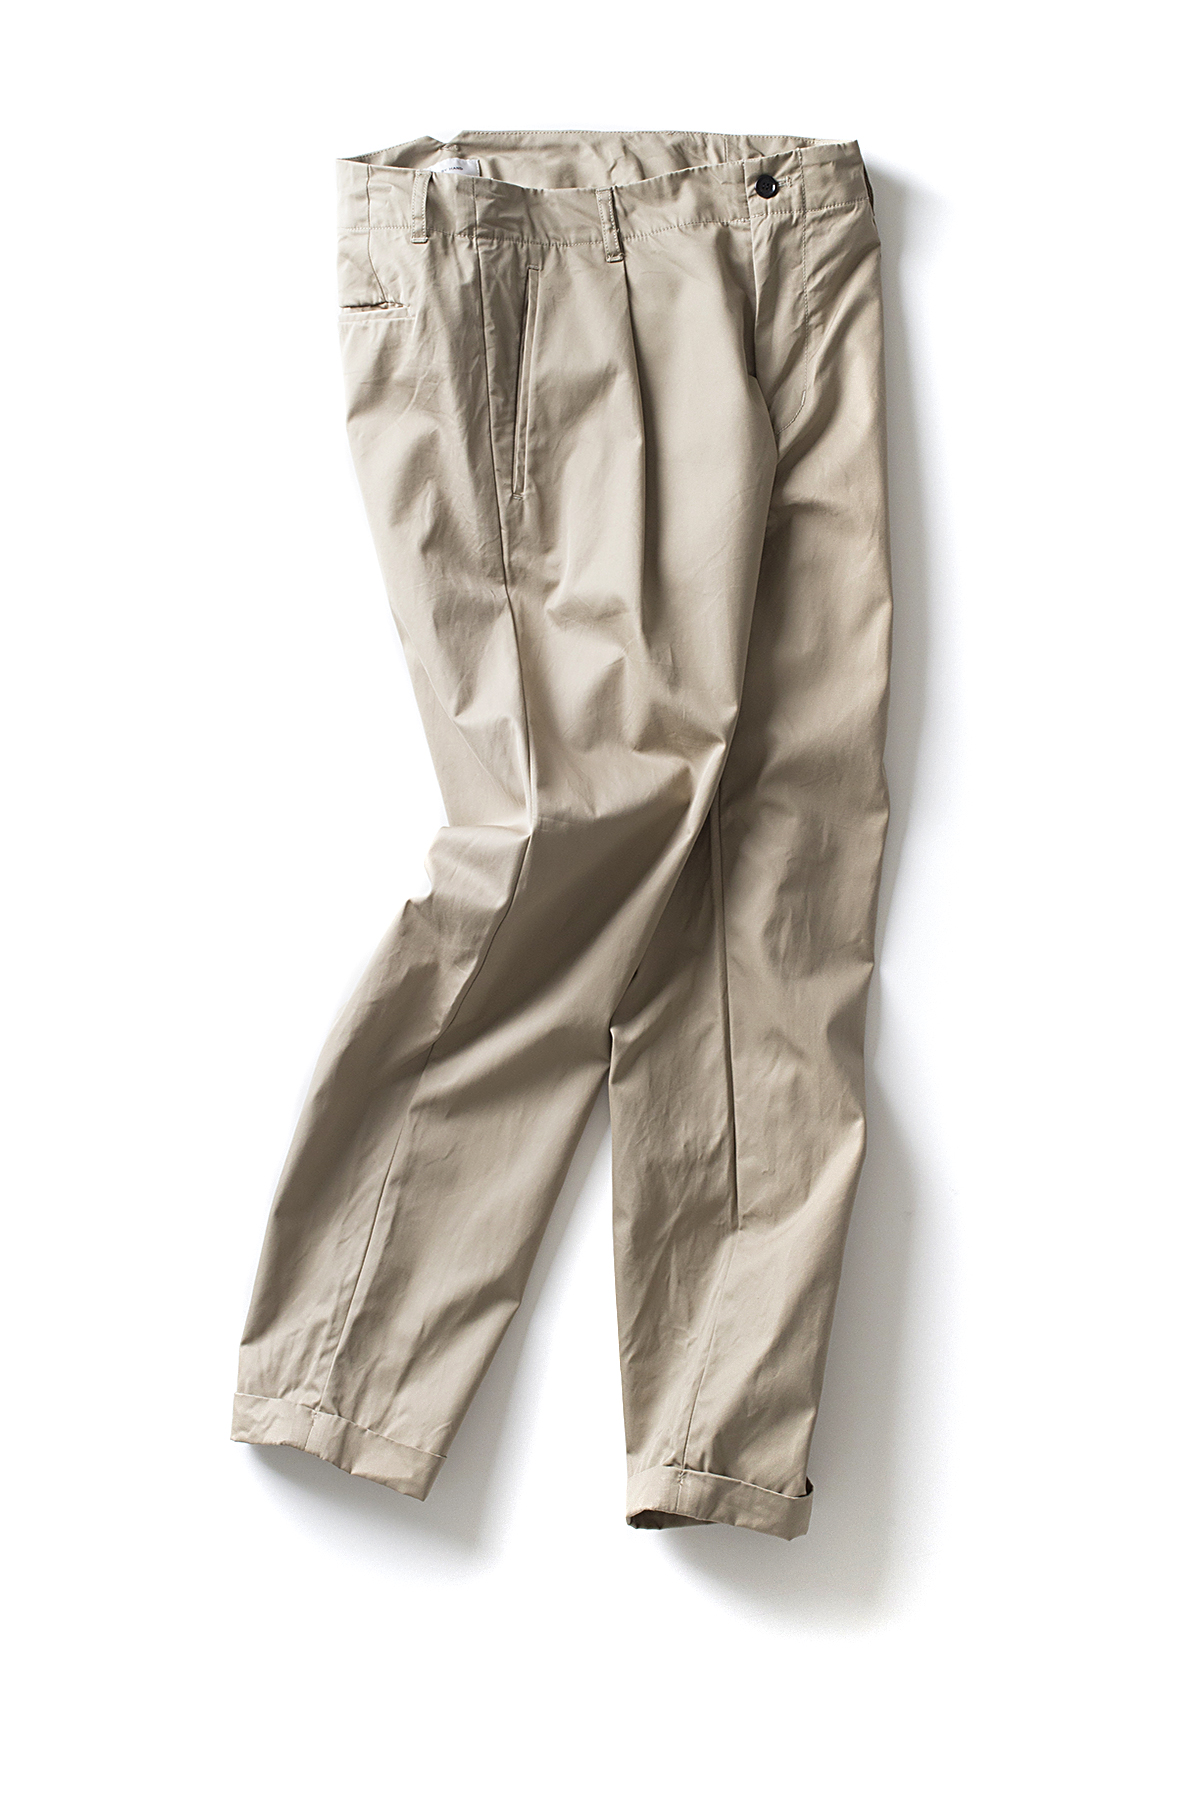 Still By Hand : Deep Tuck Slacks (Beige)